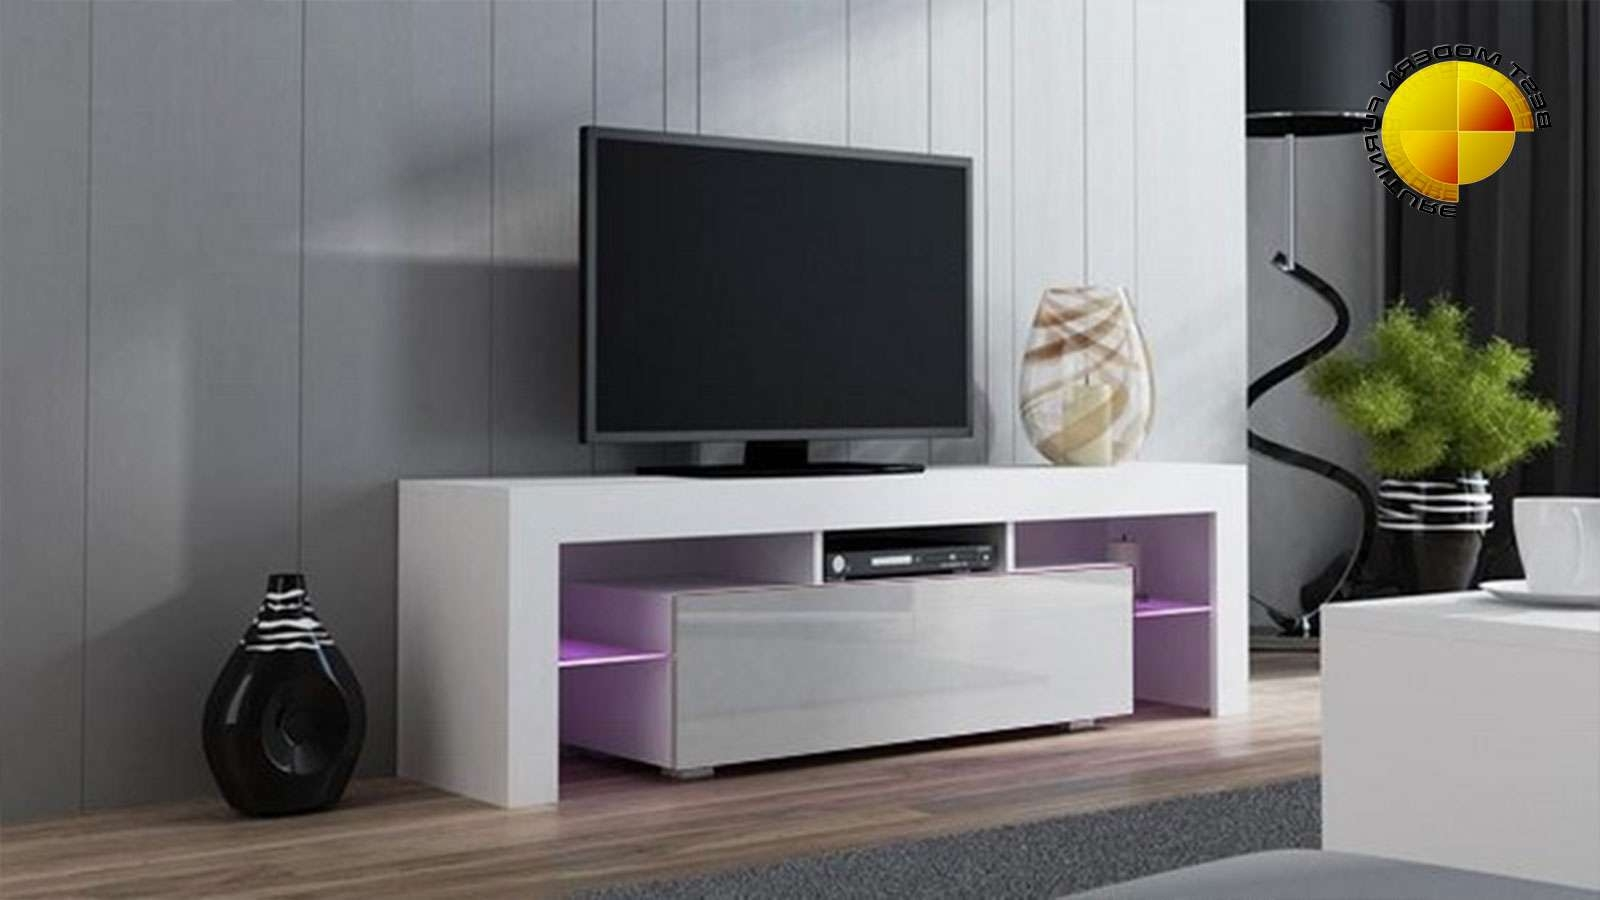 Modern Tv Stand 160cm High Gloss Cabinet Rgb Led Lights White Unit Pertaining To White Tv Cabinets (View 16 of 20)